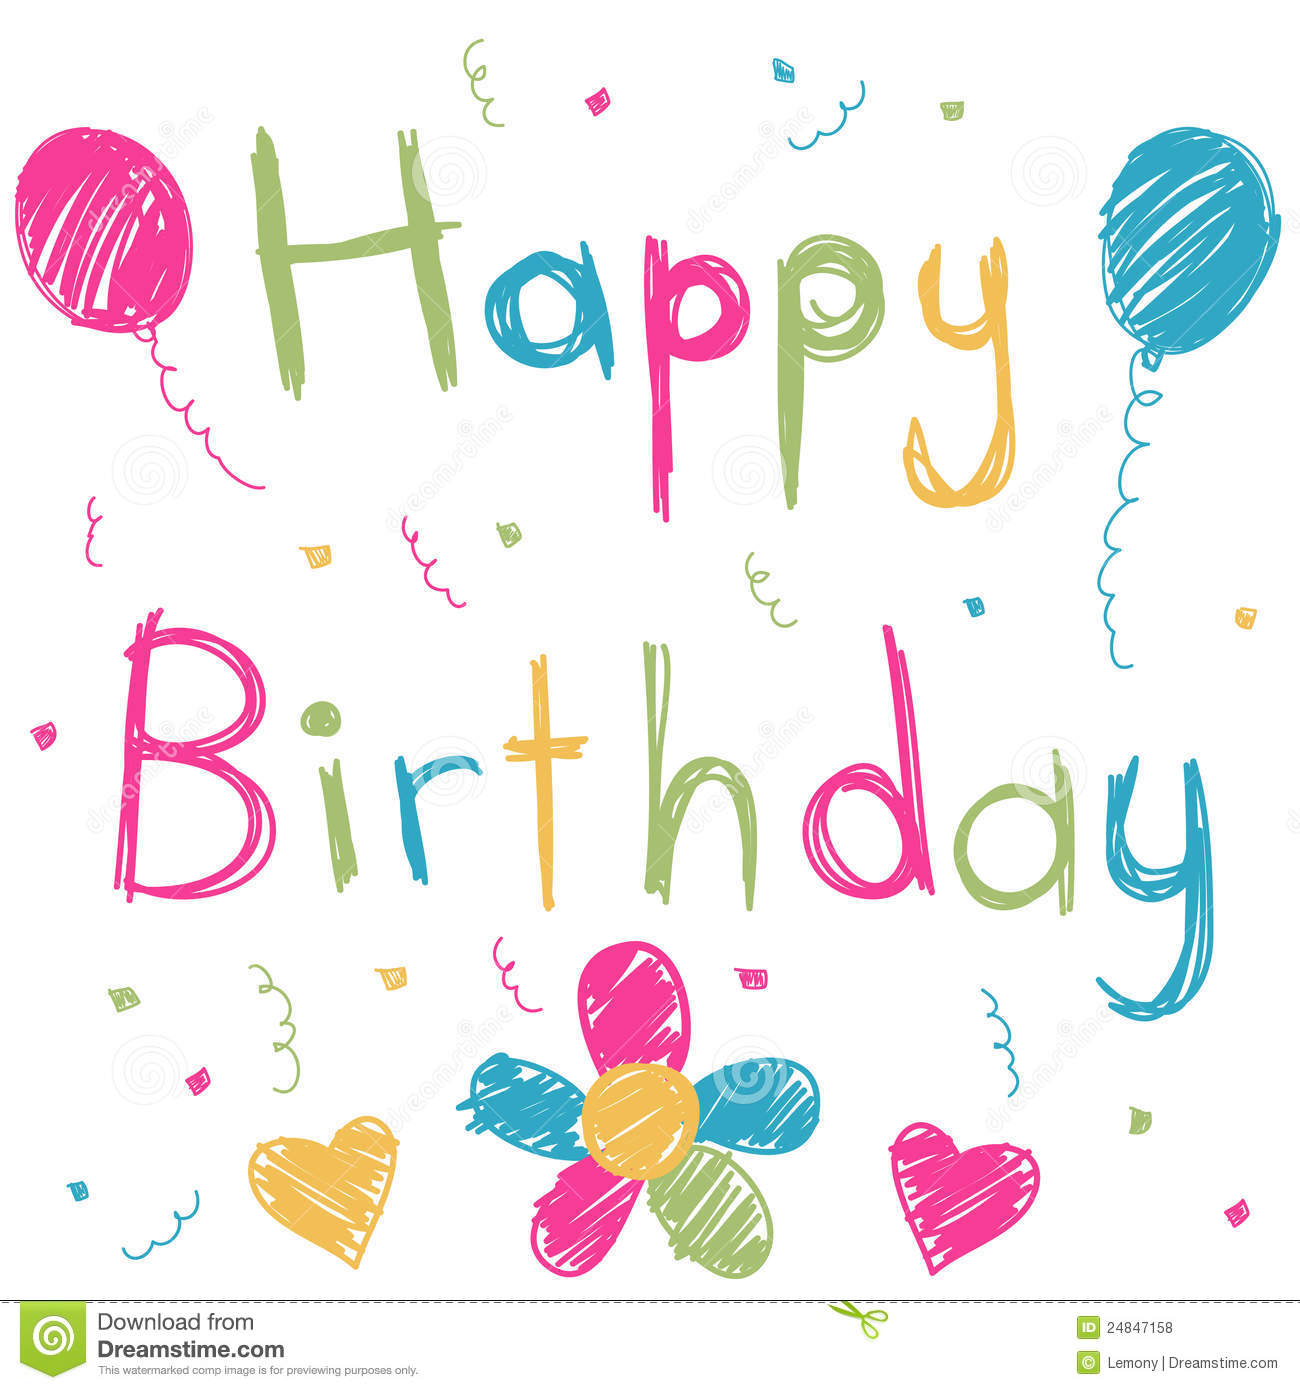 birthday drawings for kids ; birthday-drawings-for-kids-happy-birthday-card-24847158